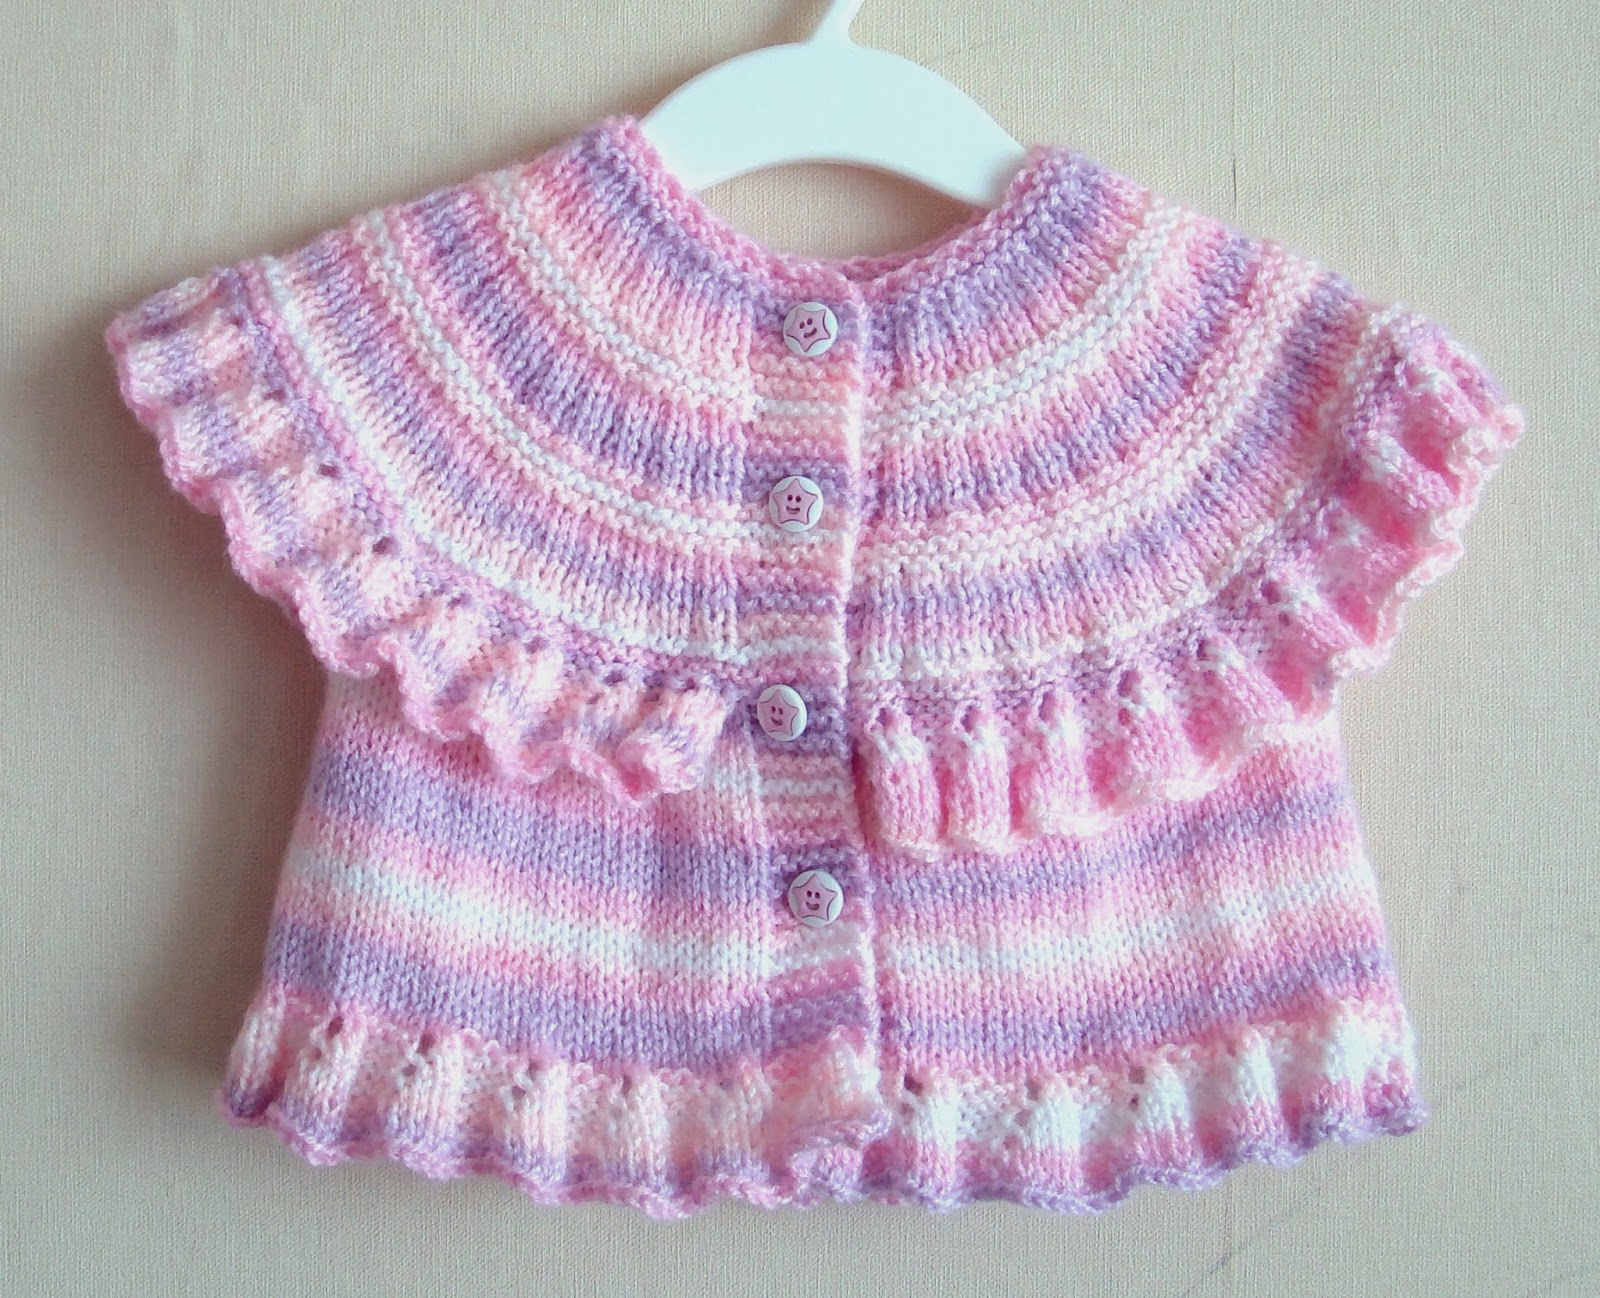 Knitted Baby Vest Patterns Free : Knitting Pattern for Ruffle Baby Vest ~ Pure Craft